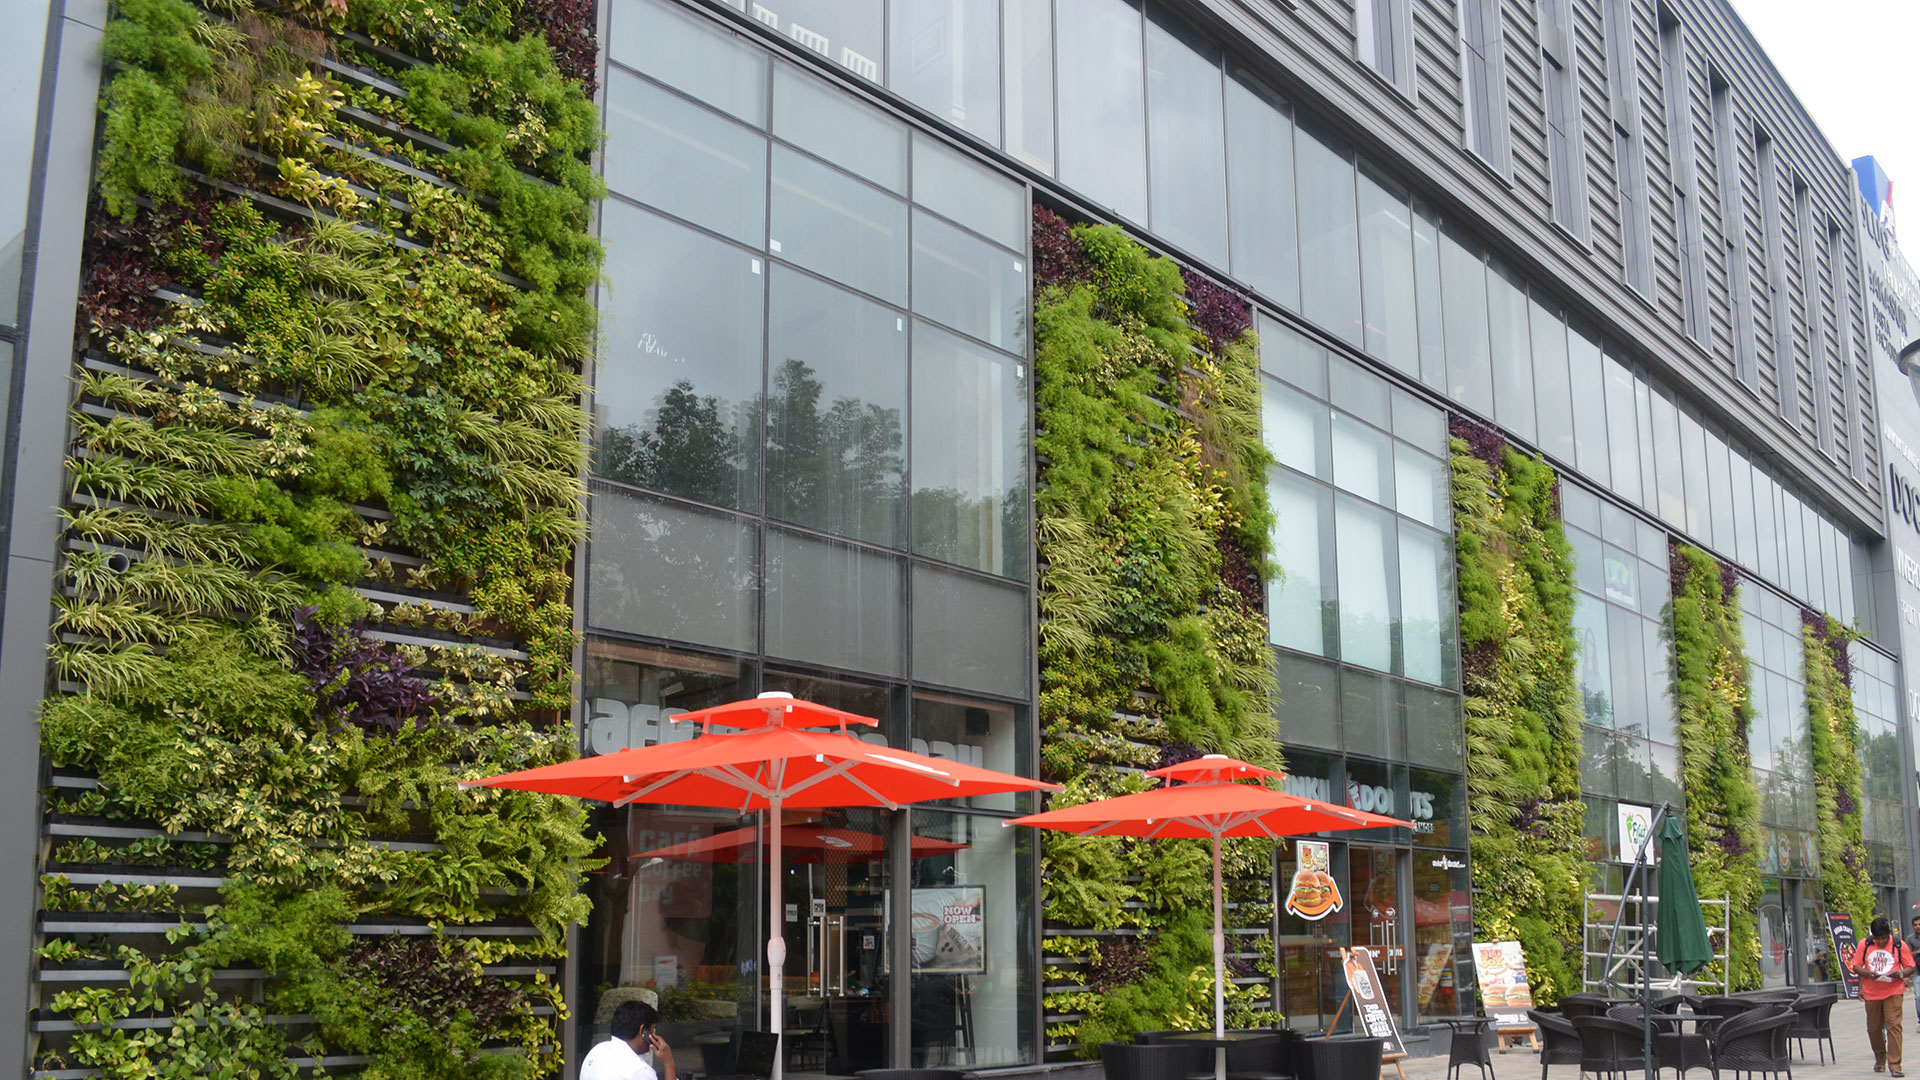 Vertical Garden Company - product greenwall lineargreen